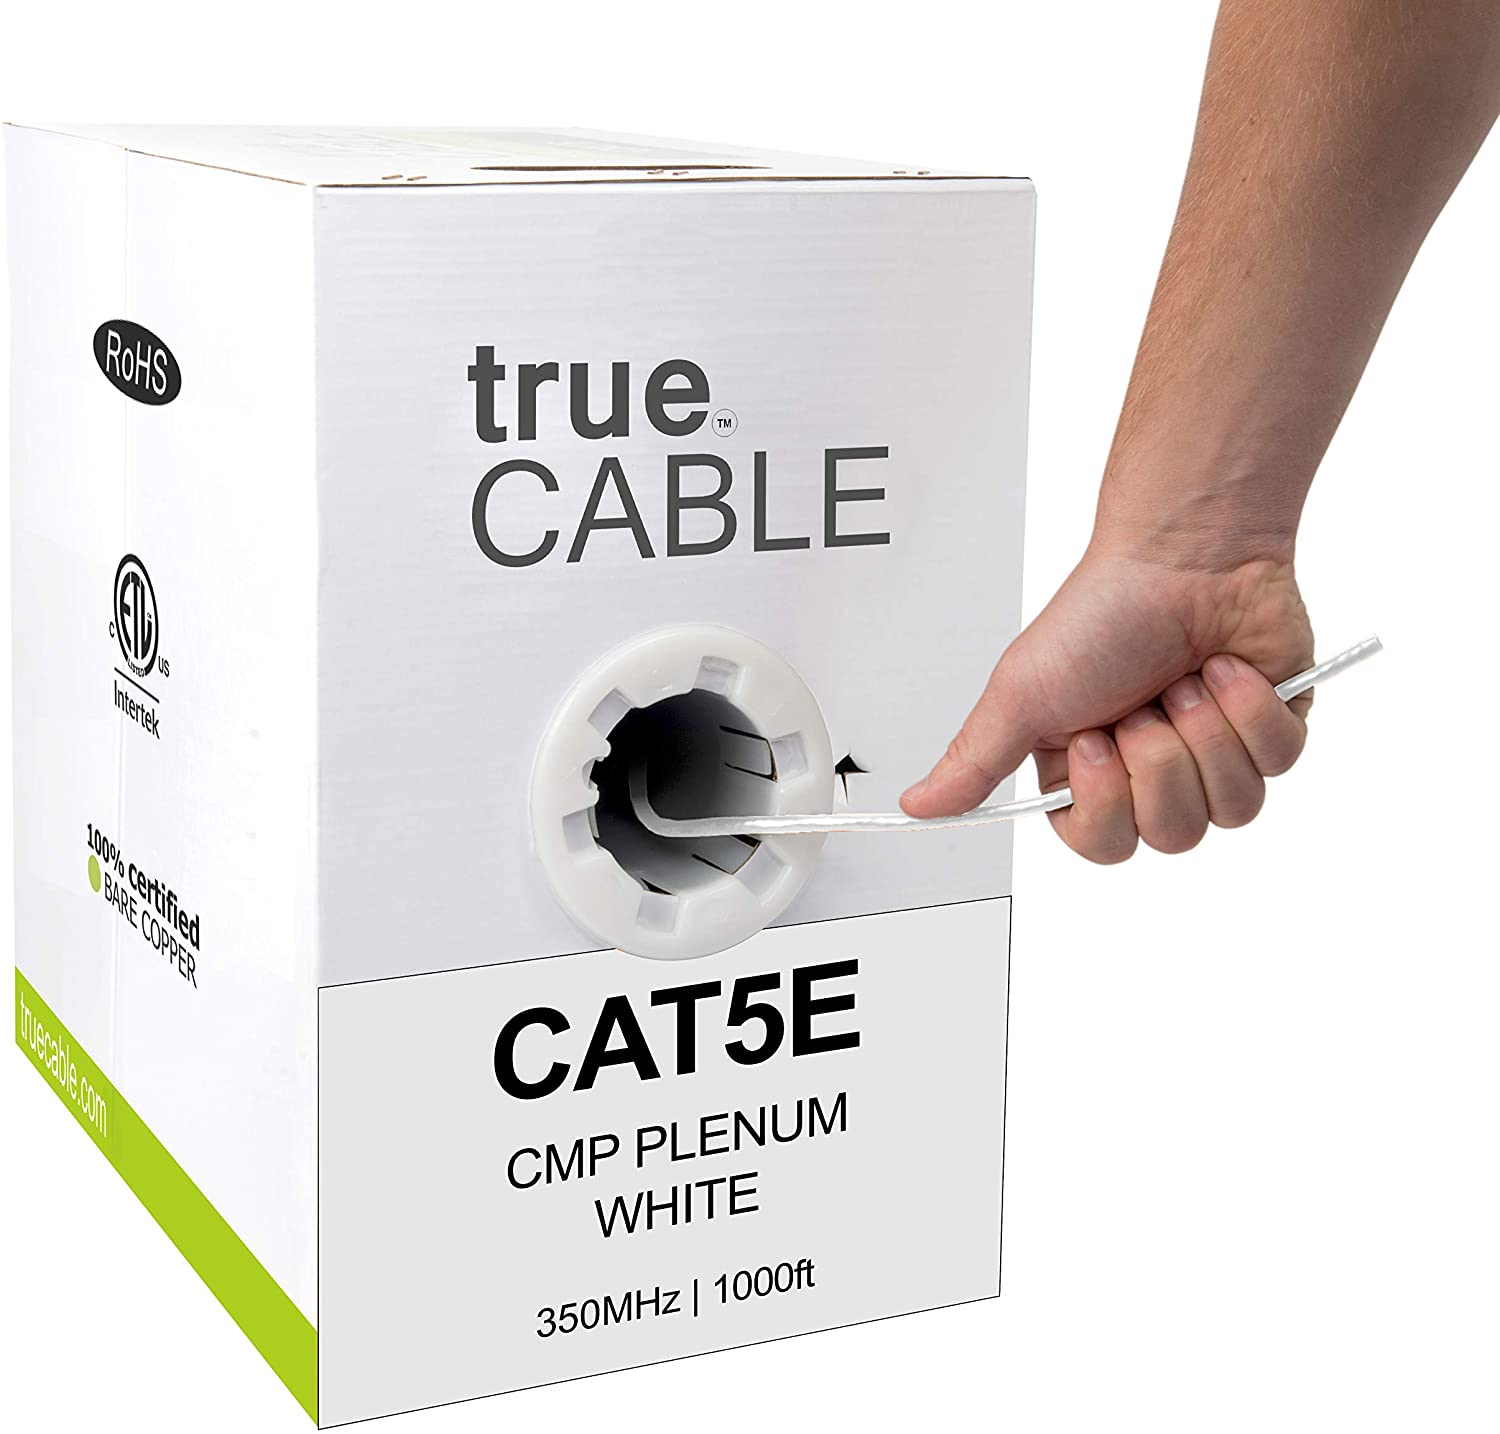 trueCABLE Cat5e Plenum (CMP), 1000ft, White, 24AWG 4 Pair Solid Bare Copper, 350MHz, ETL Listed, Unshielded Twisted Pair (UTP), Bulk Ethernet Cable